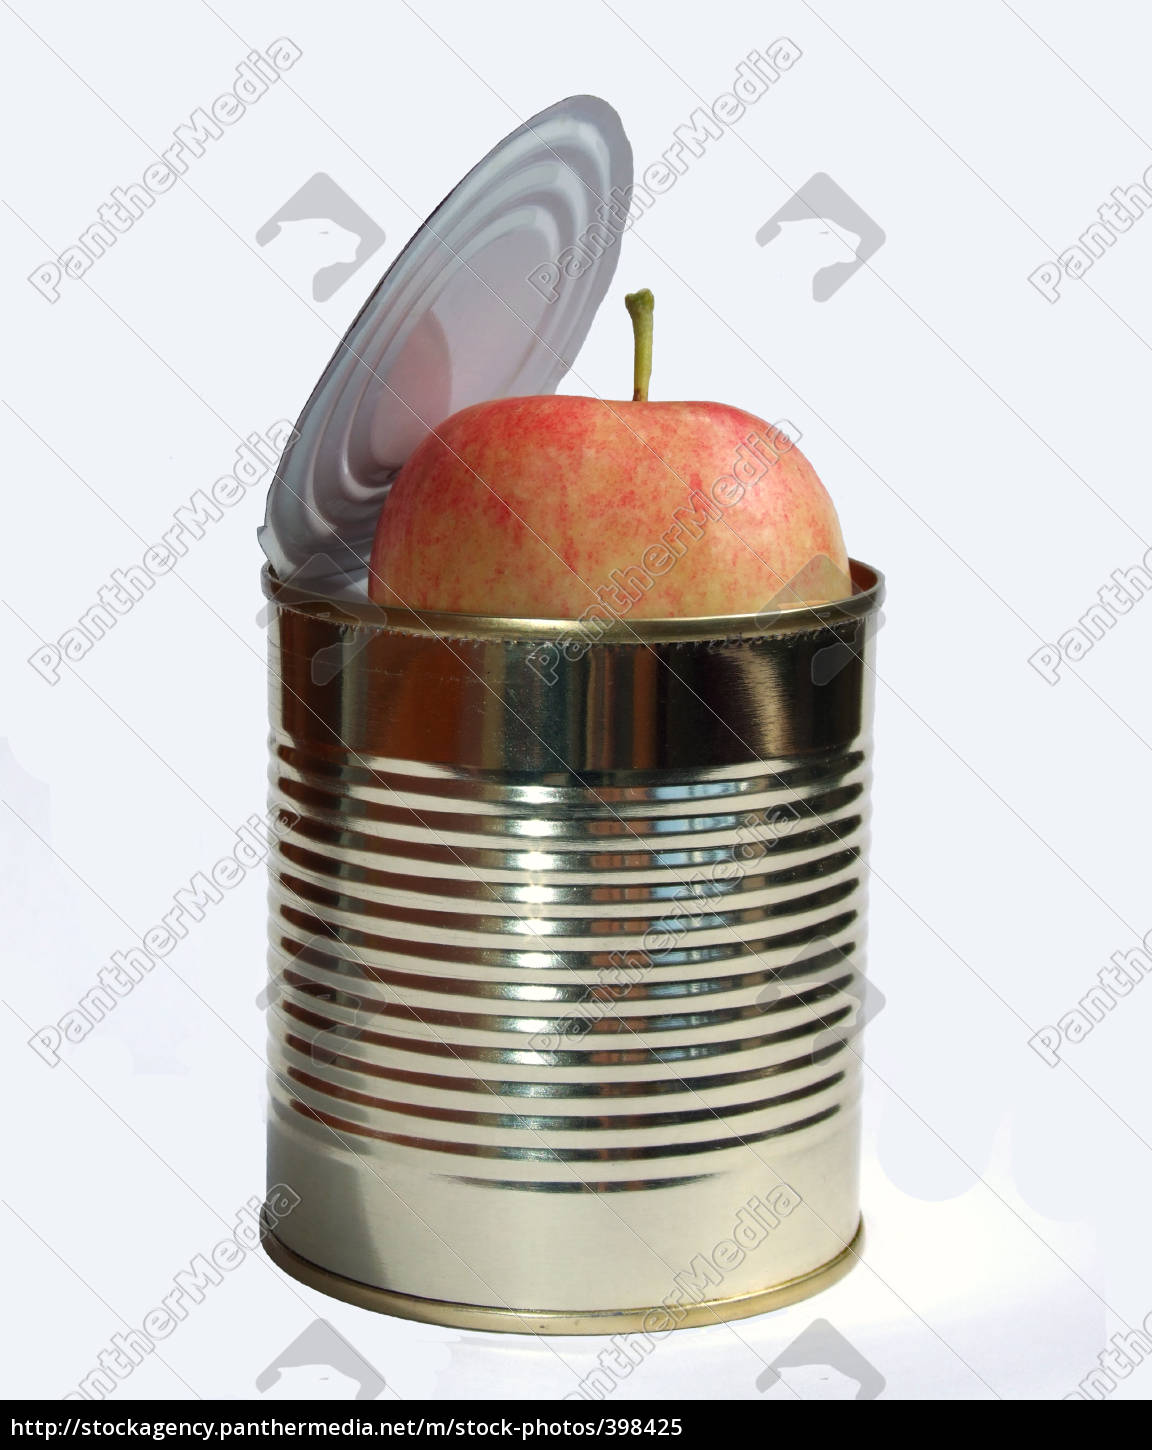 canned, apple - 398425